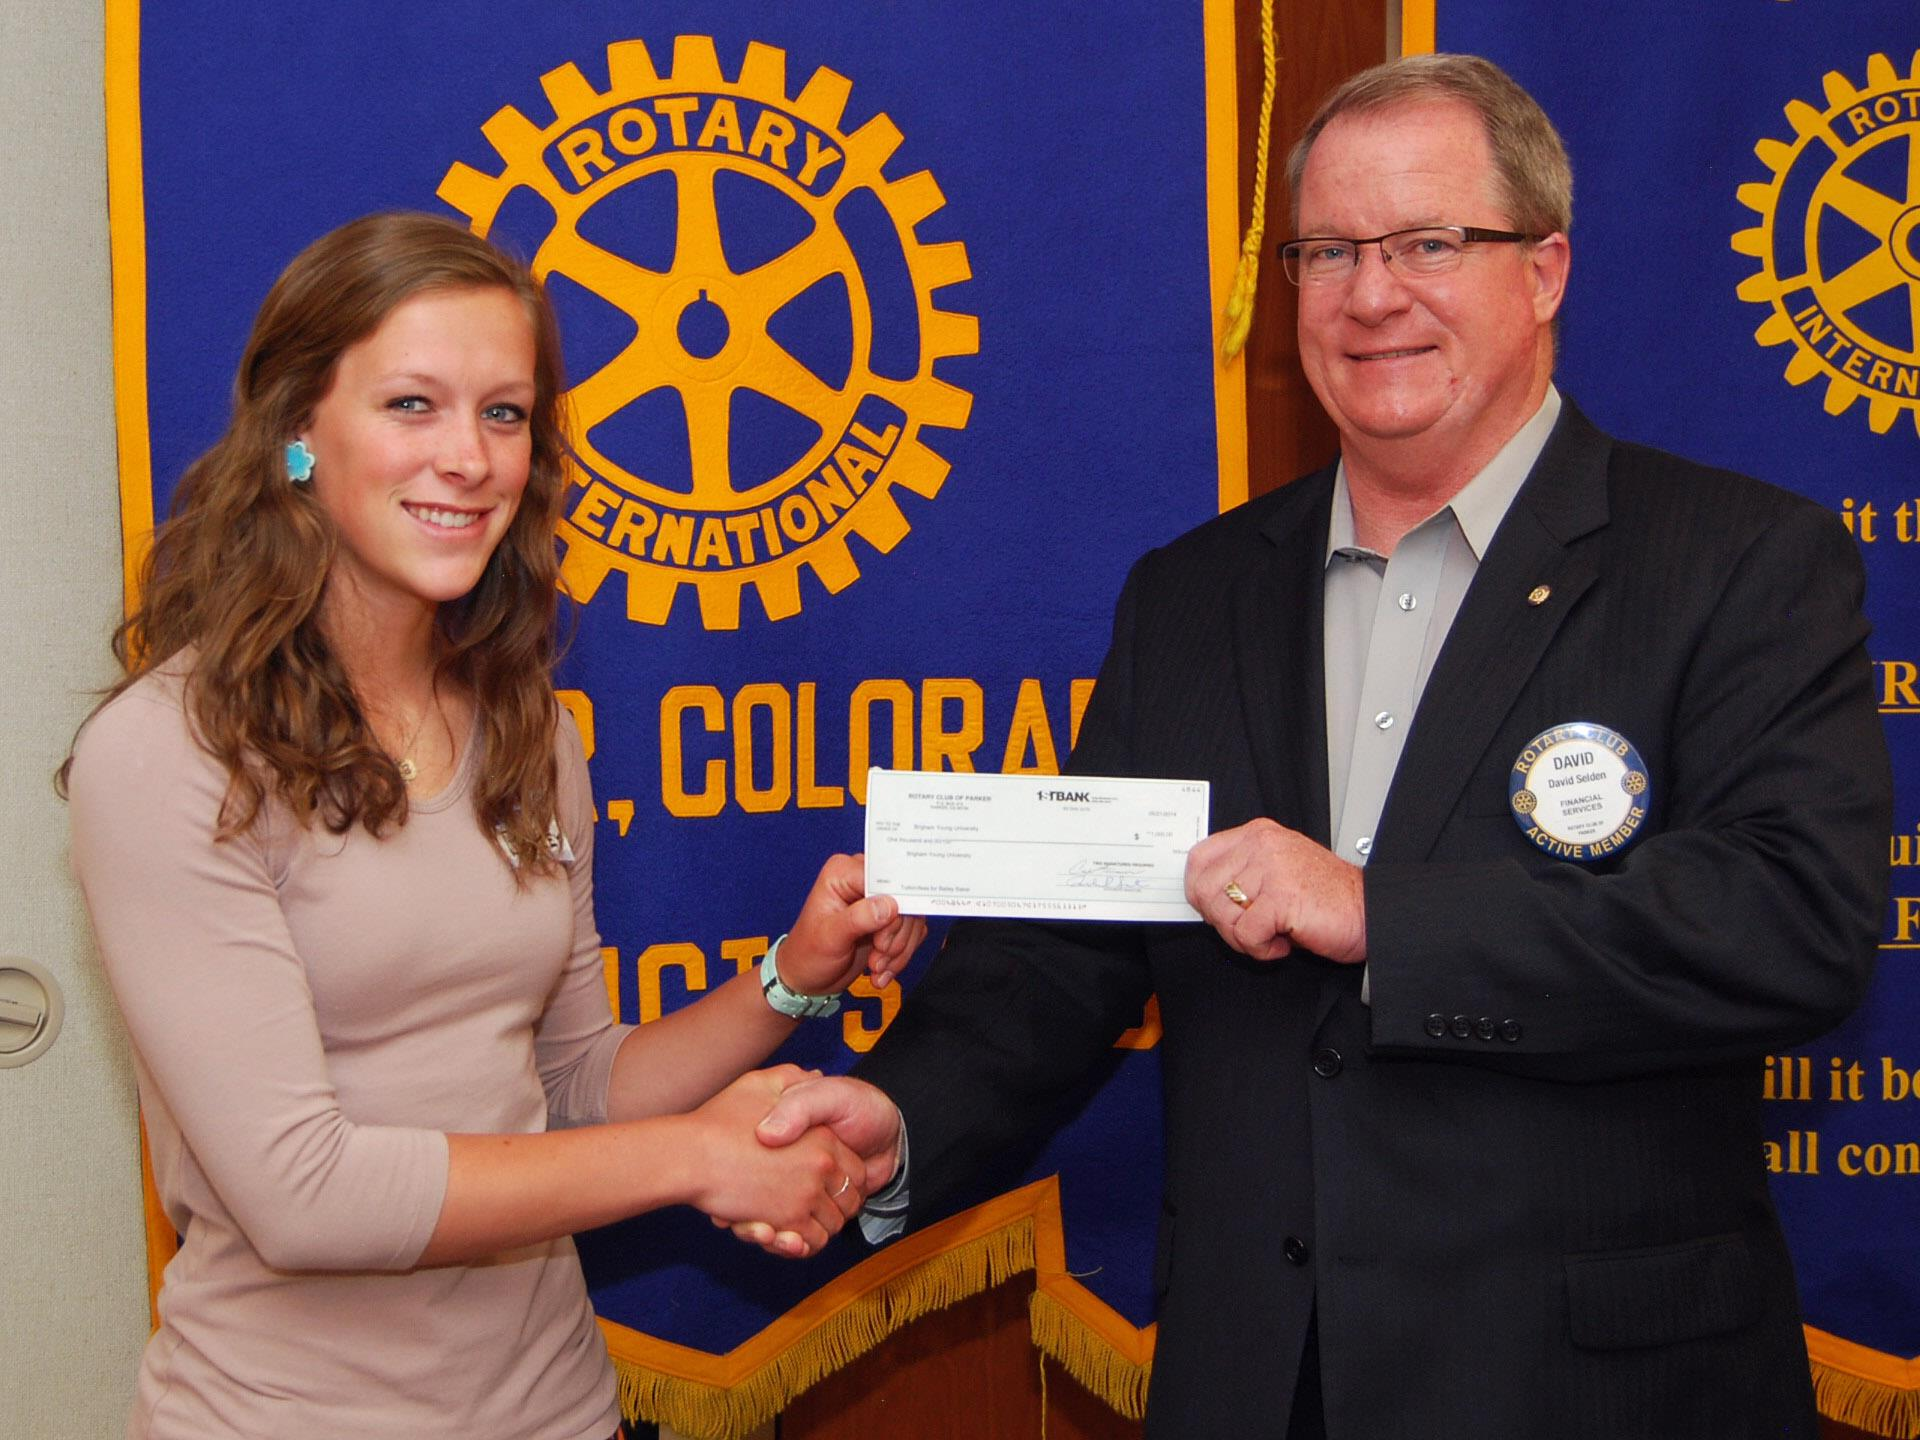 rotary club essay contest winners